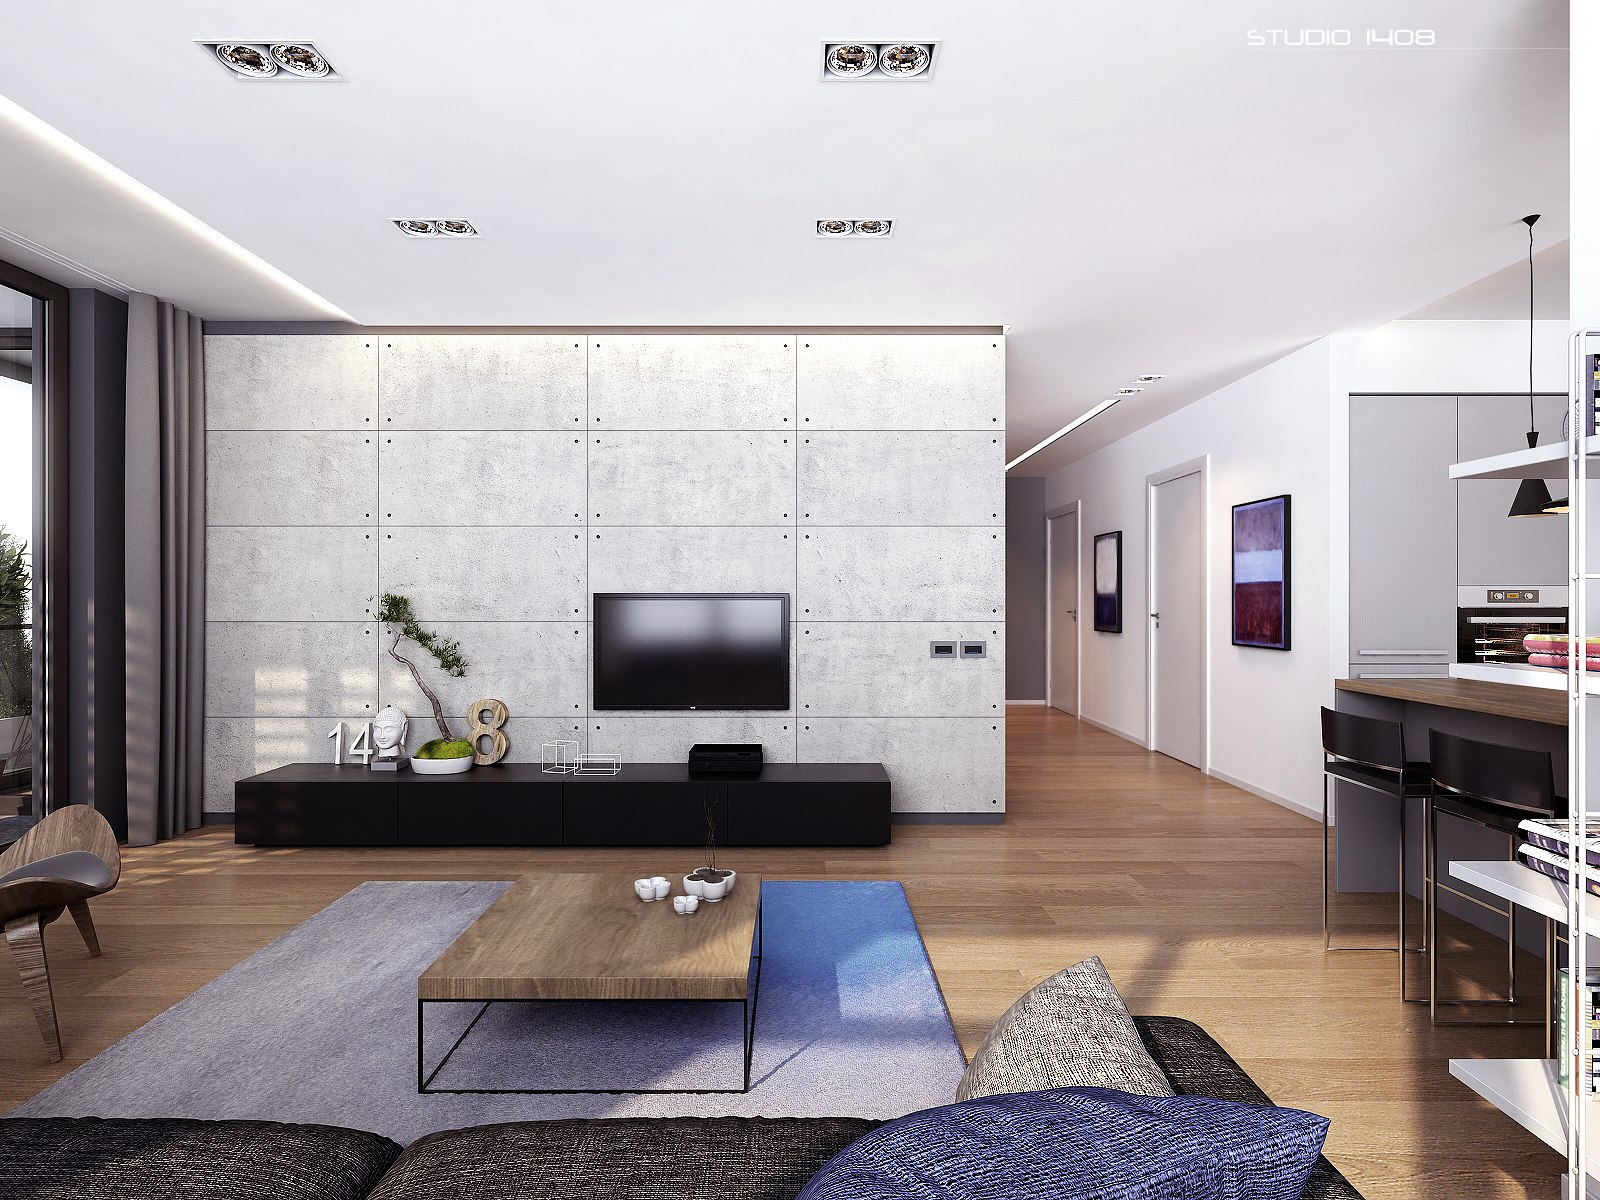 apartment living for the modern minimalist - Minimalist Apartment Design